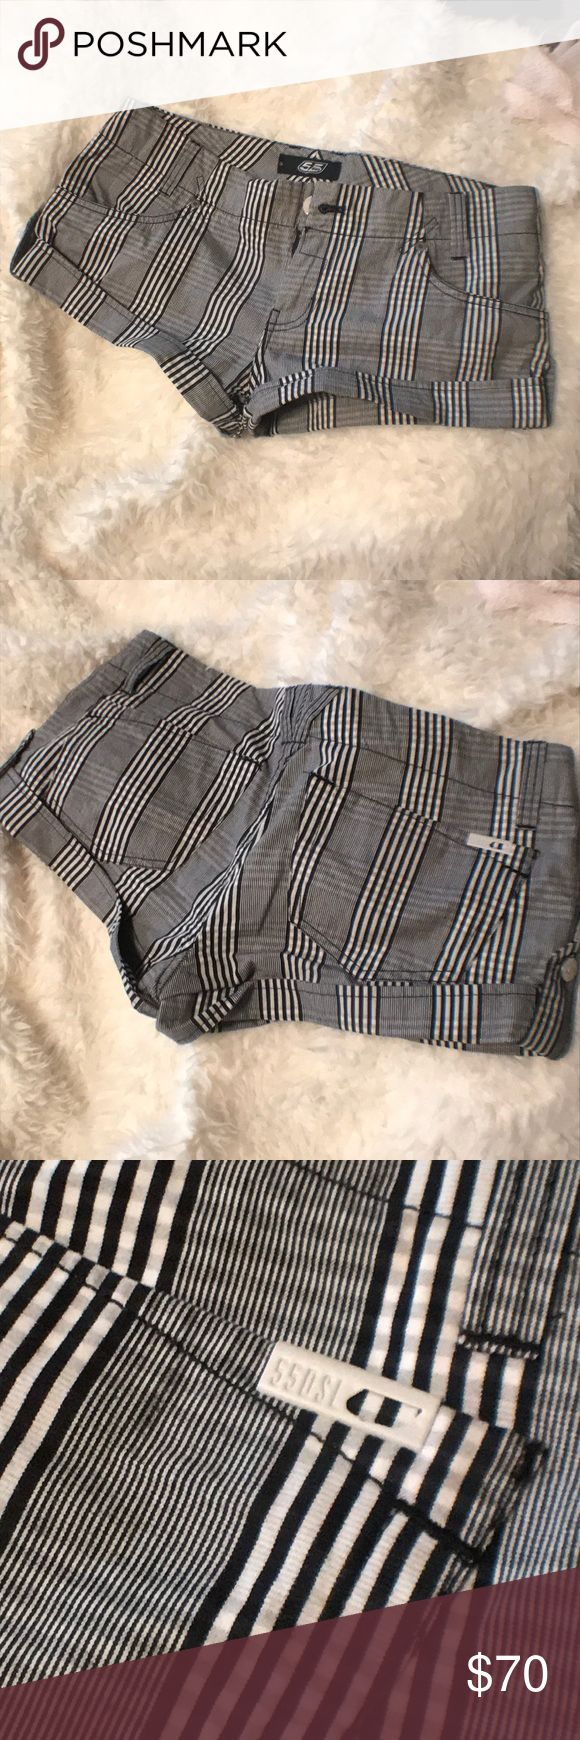 Diesel Plaid Shorts. Size 29 short shorts by DIESEL. Beautiful plaid design, NWOT never worn. Comes from a smoke free pet free home. Diesel Shorts Skorts